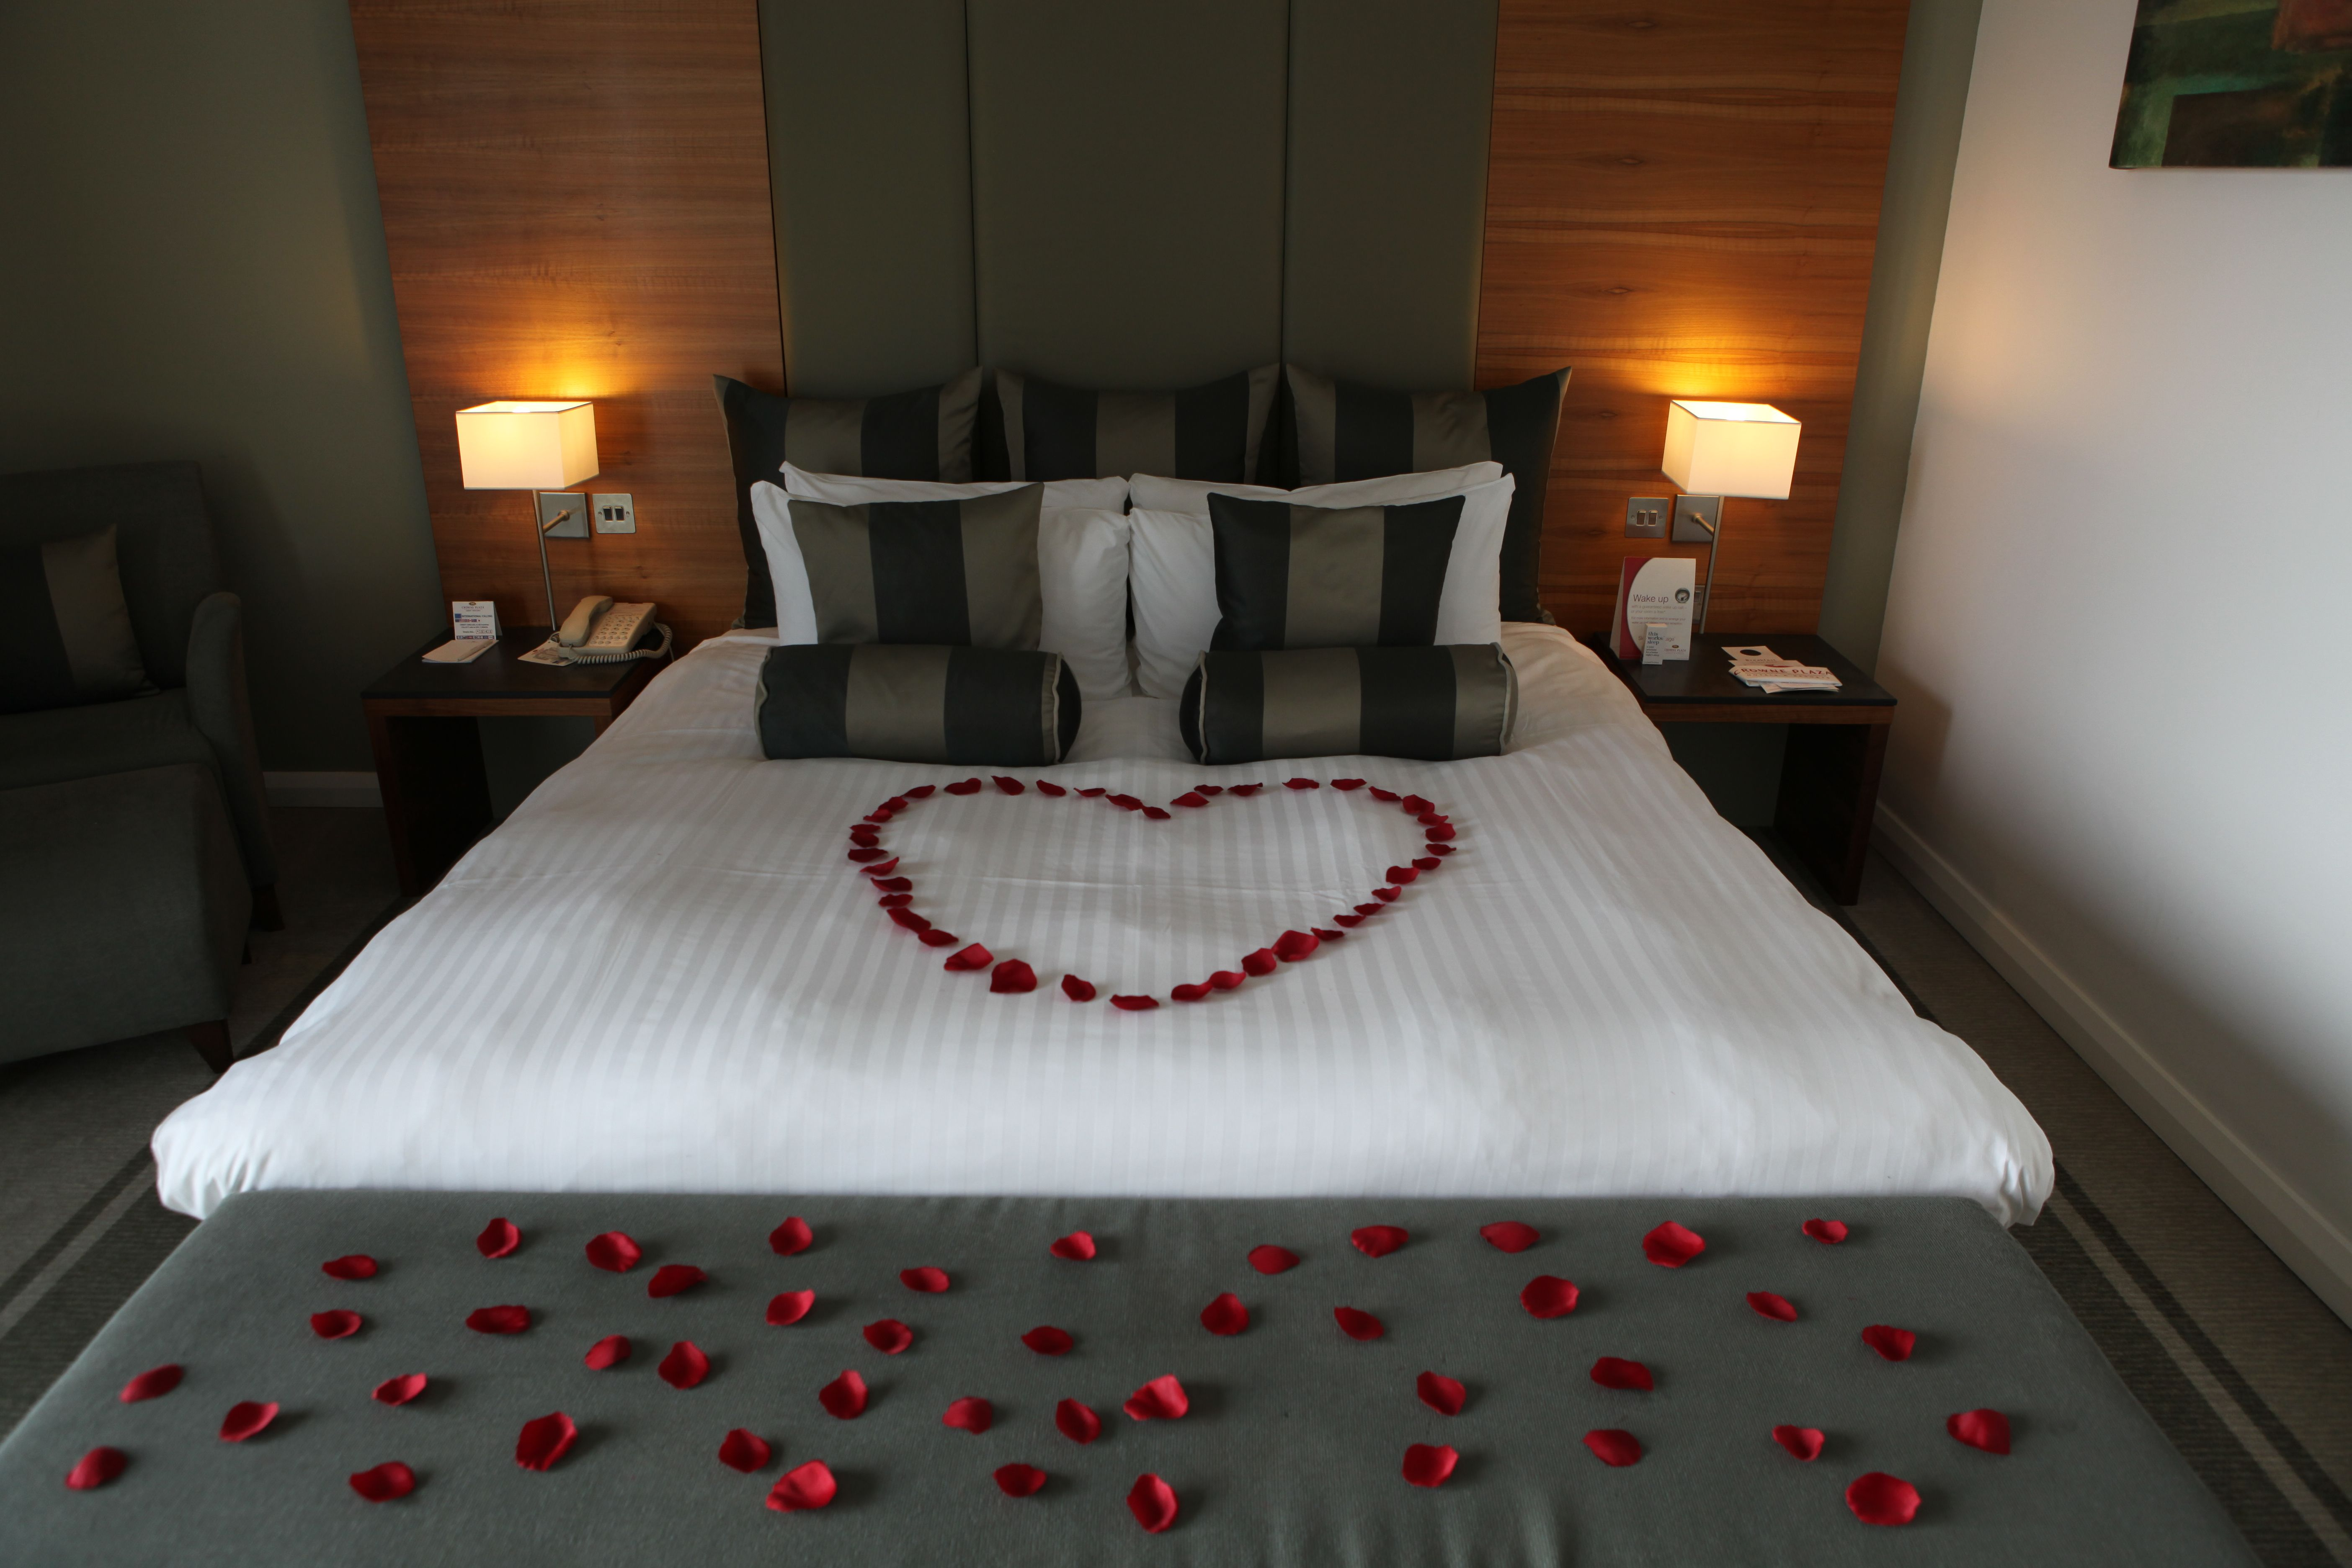 Wedding night bedroom decoration ideas  One of our rooms ready for a wedding night  Weddings and Events